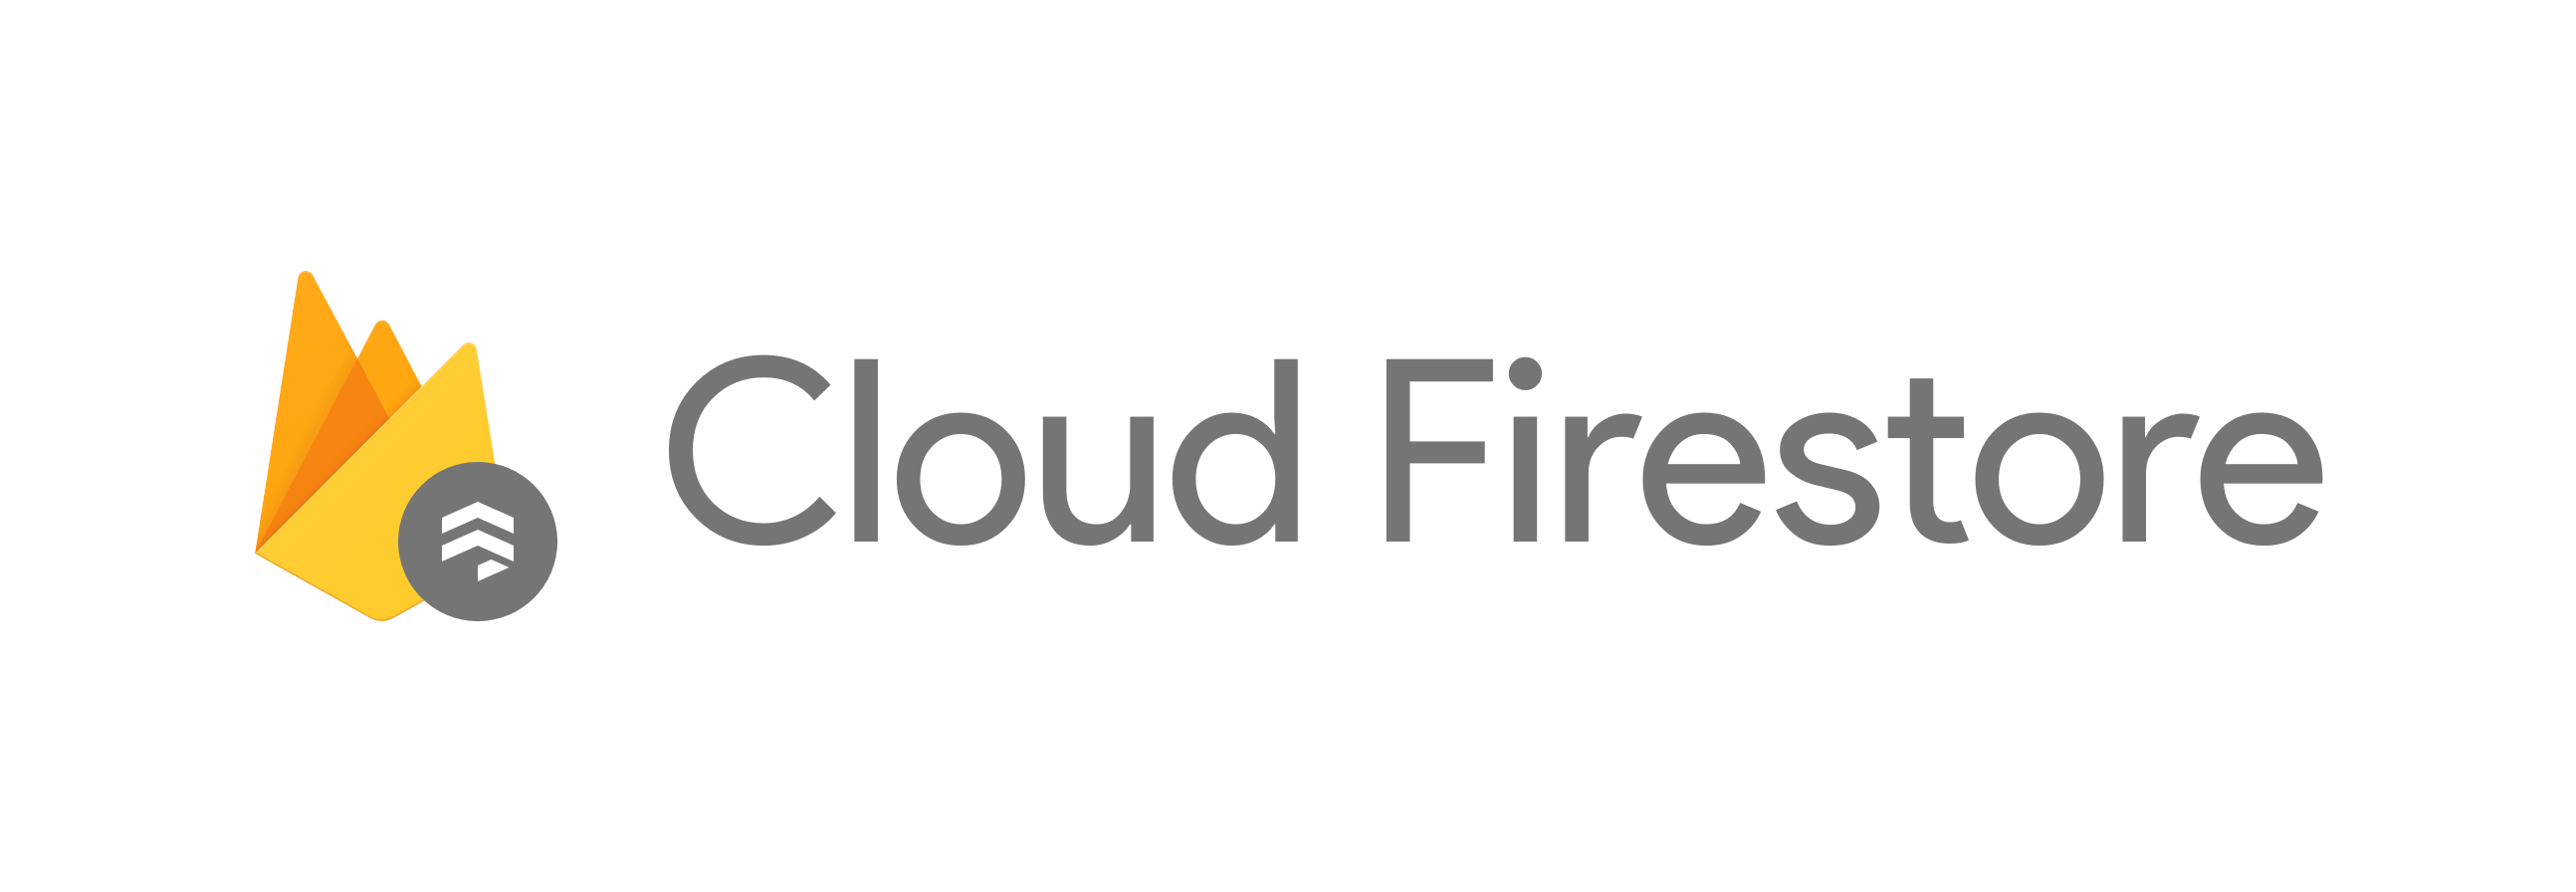 Getting started with Cloud Firestore on React Native